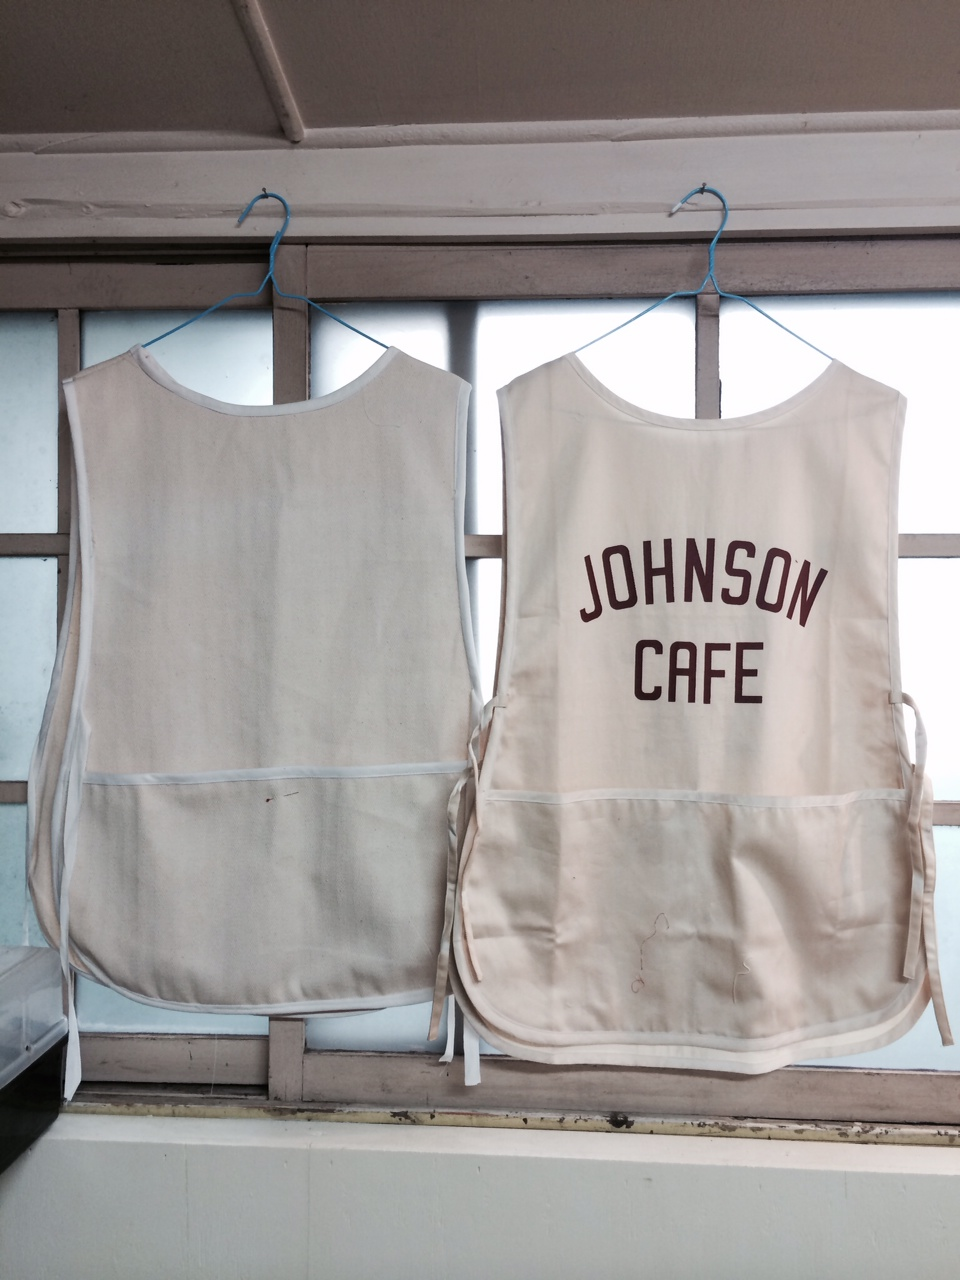 JOHNSON CAFE